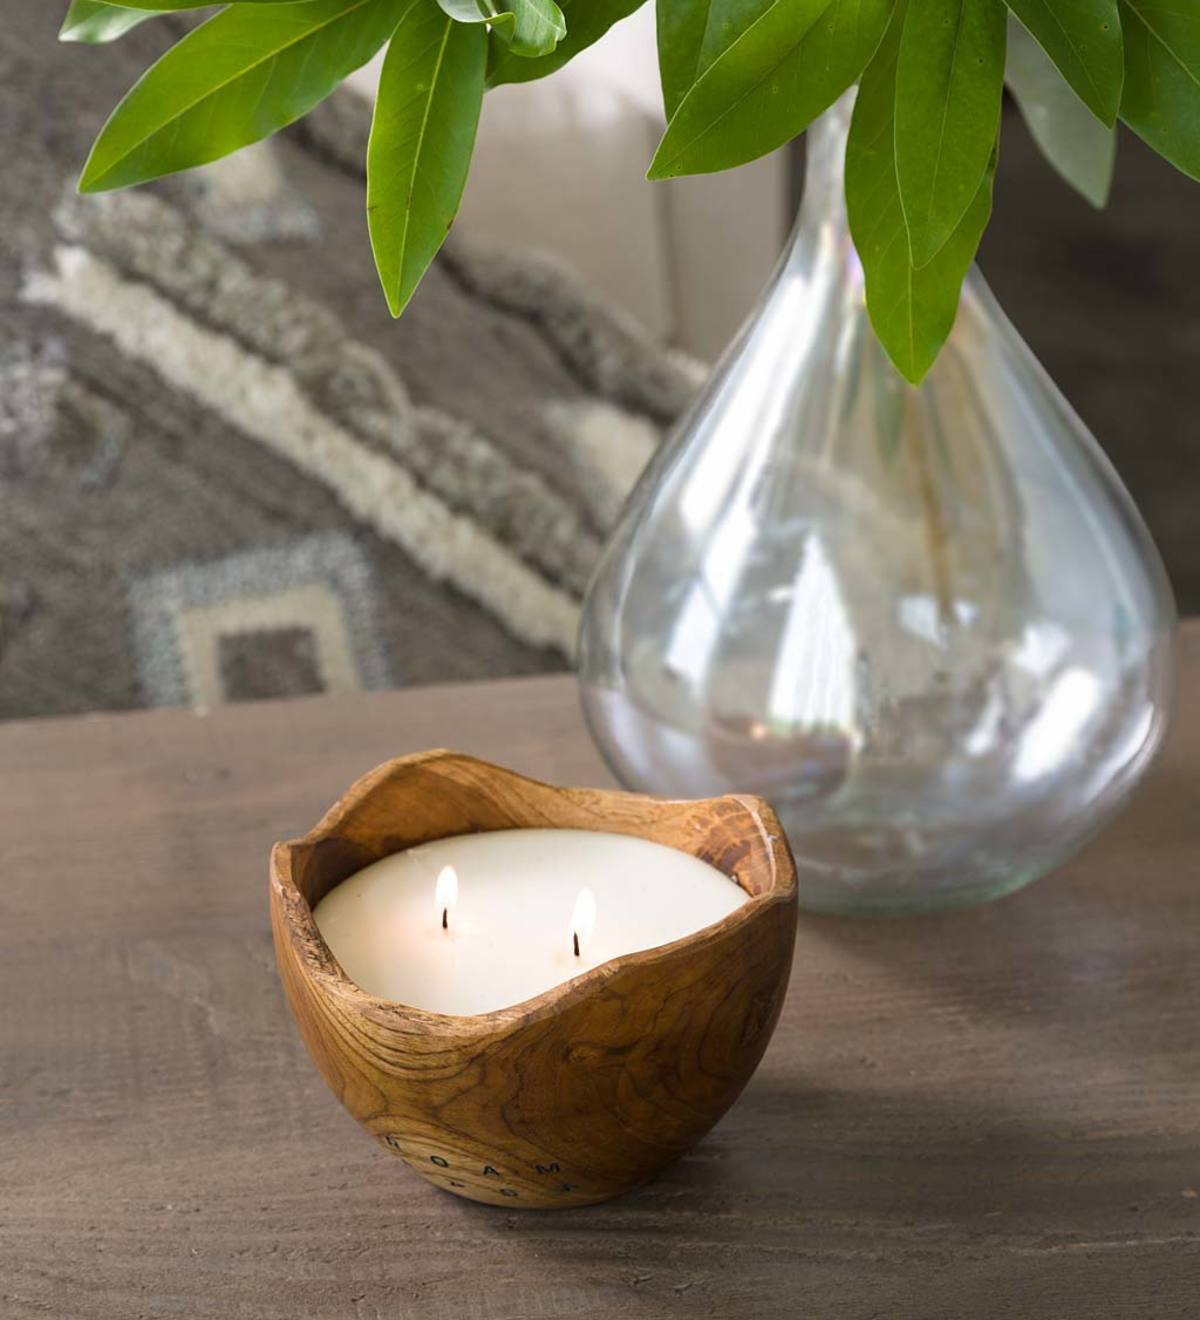 Handcrafted Teak Wood Bowl Candle Vivaterra